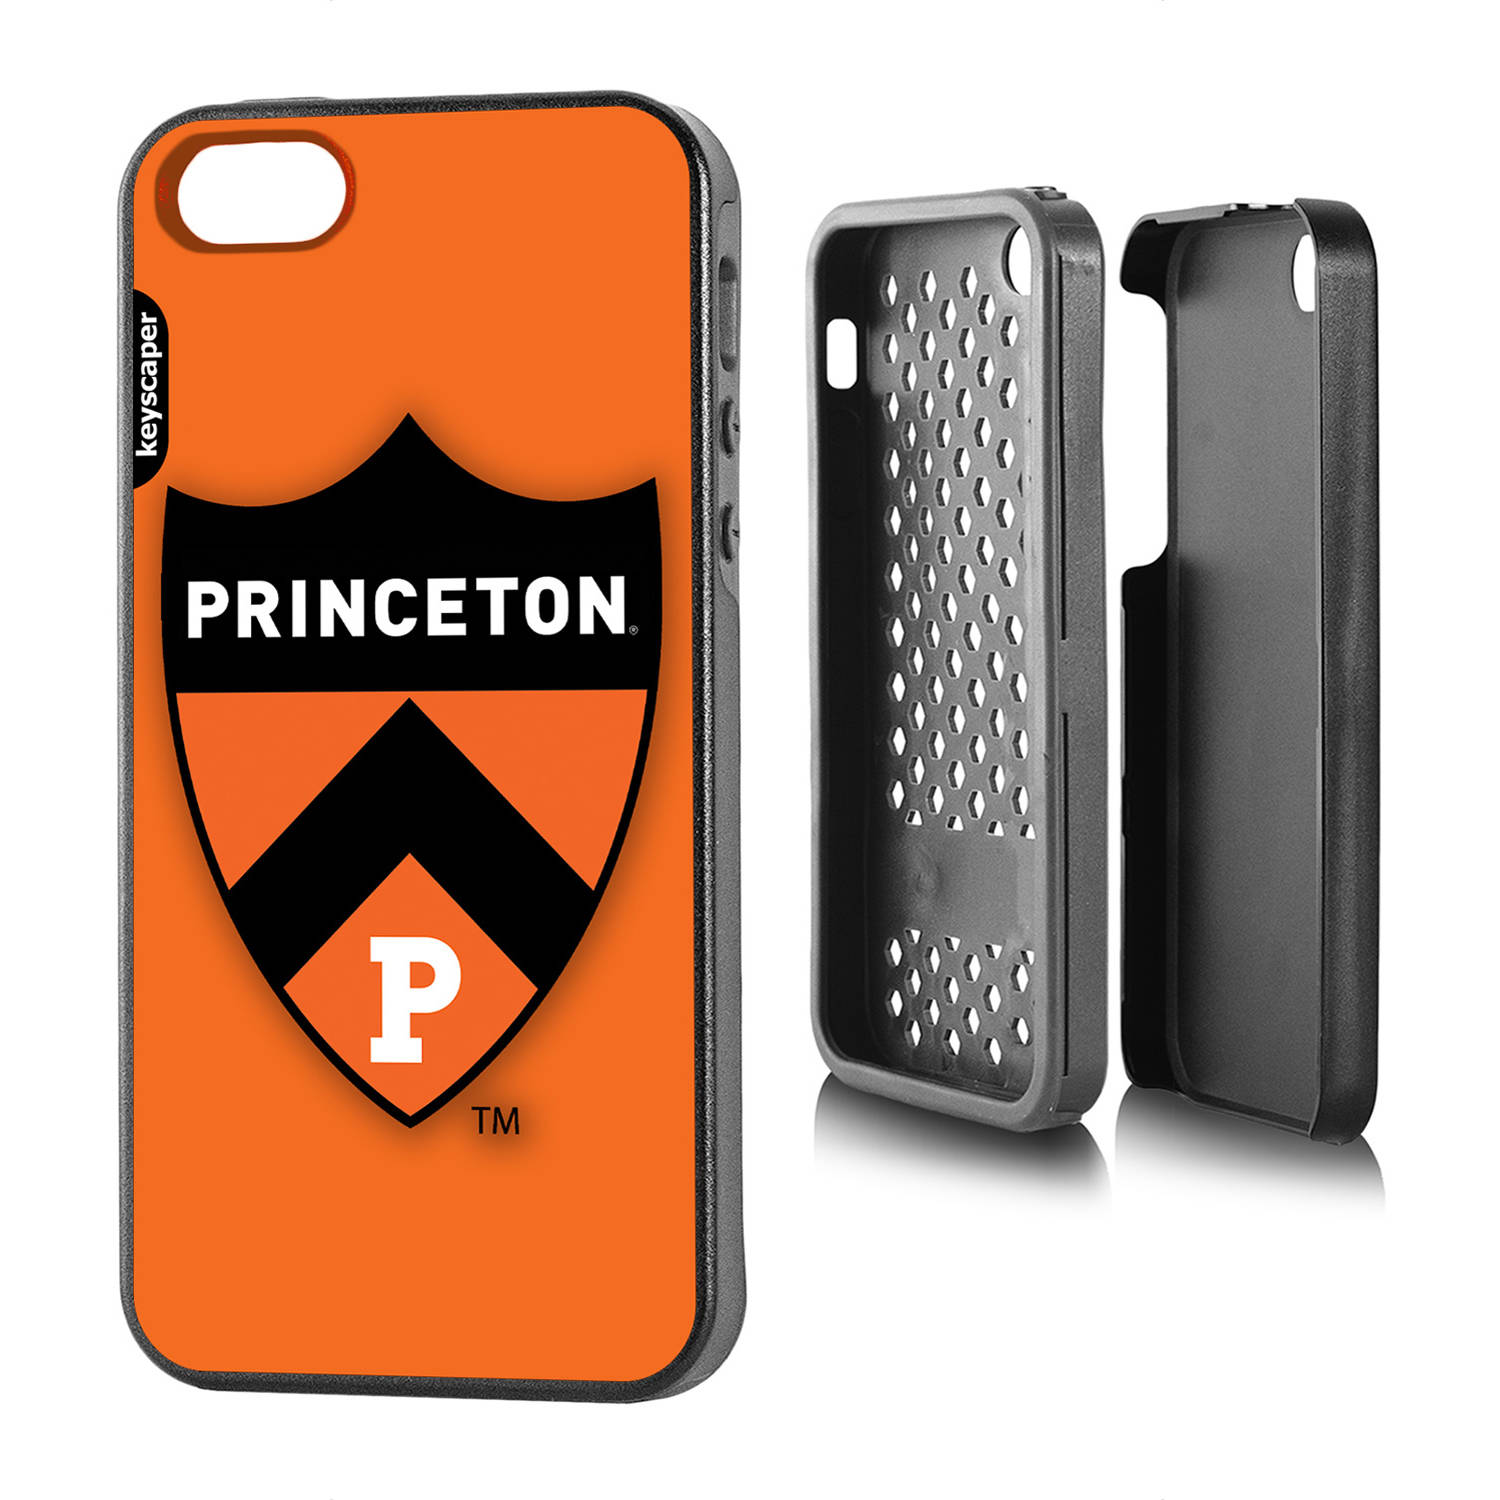 Princeton Tigers Apple iPhone 5 5s Rugged Case by Keyscaper